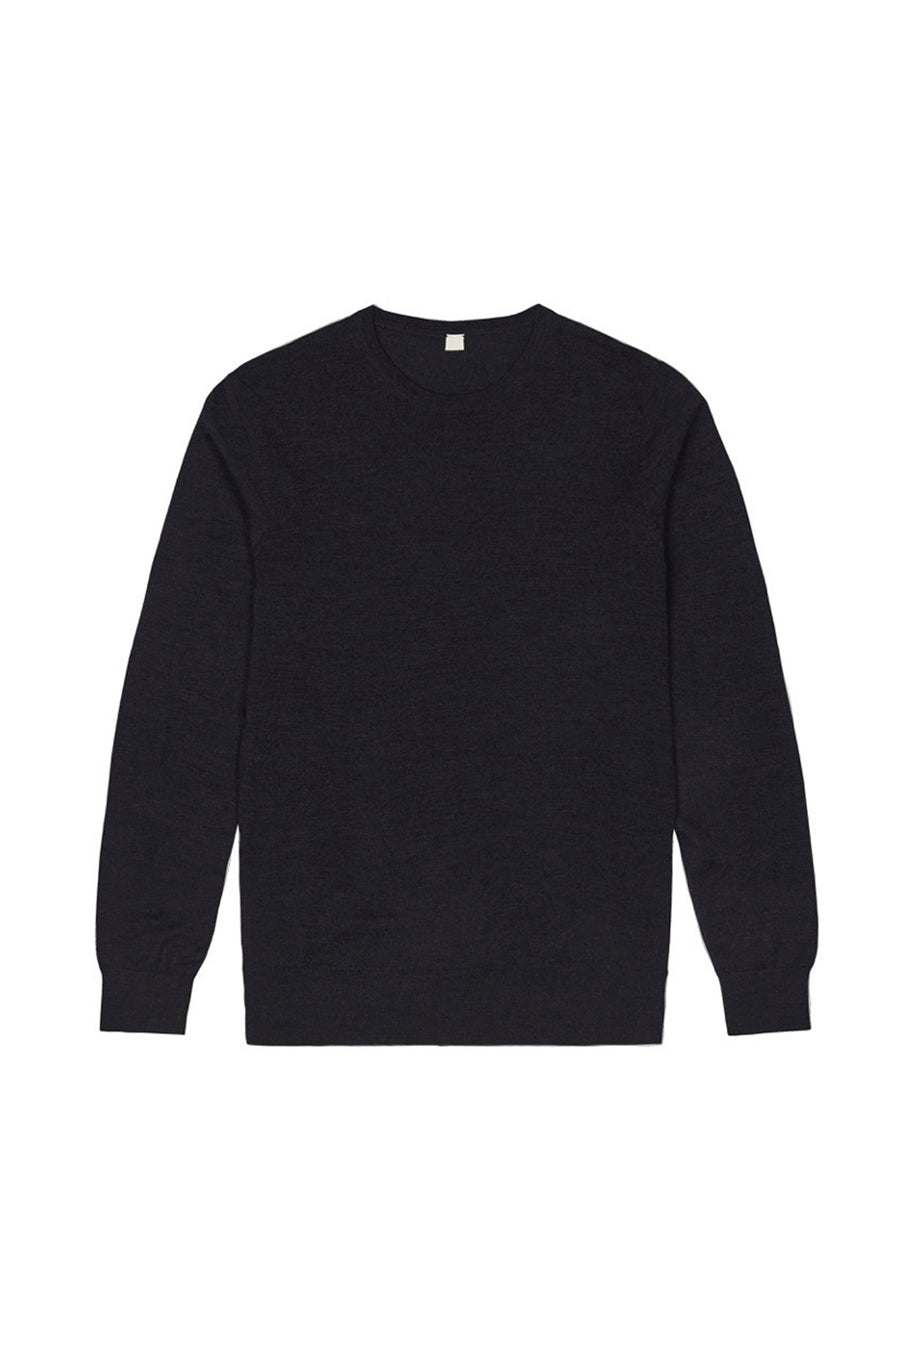 Dark Grey S160 Merino Wool Pullover